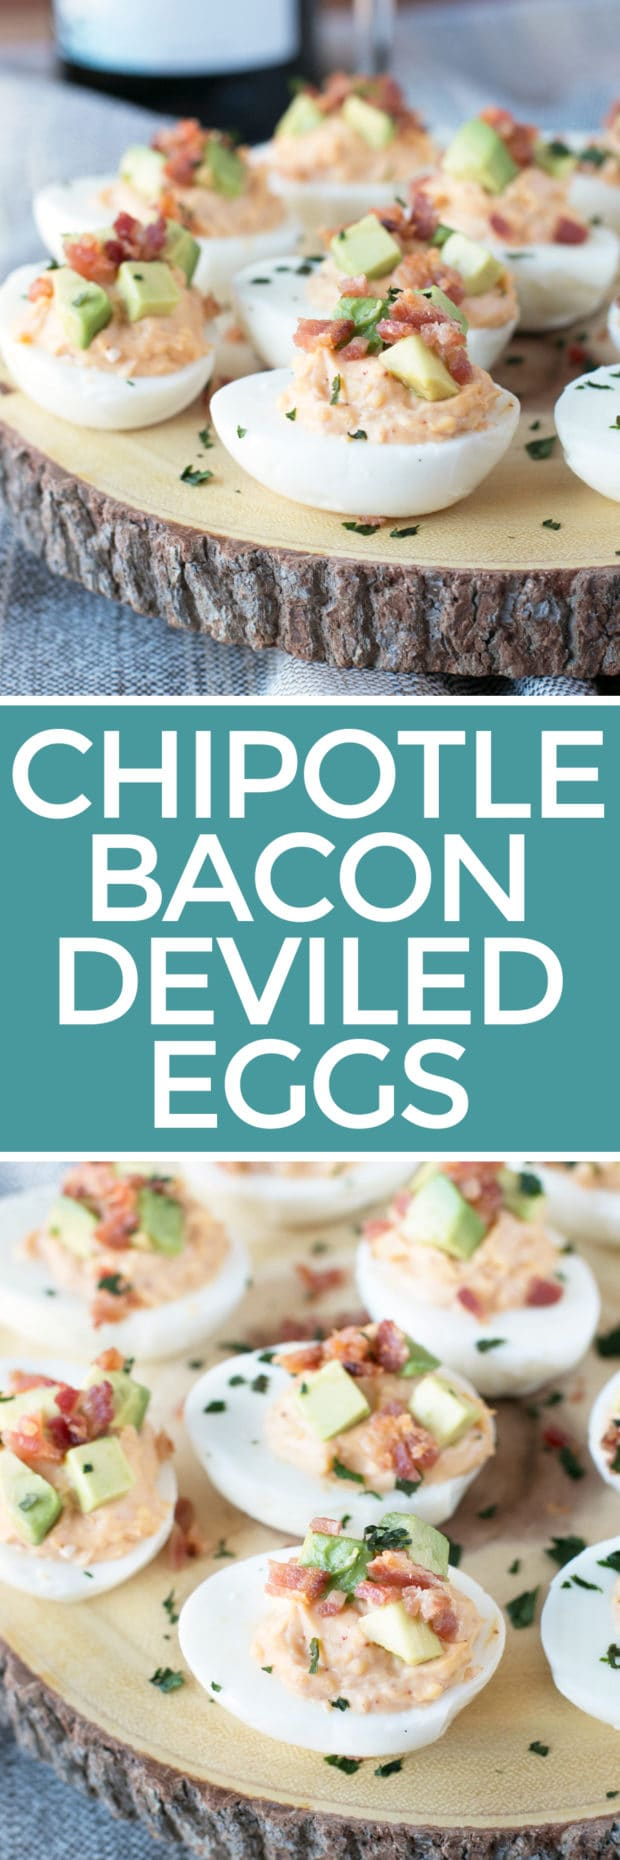 Chipotle Bacon Deviled Eggs Recipe — Dishmaps